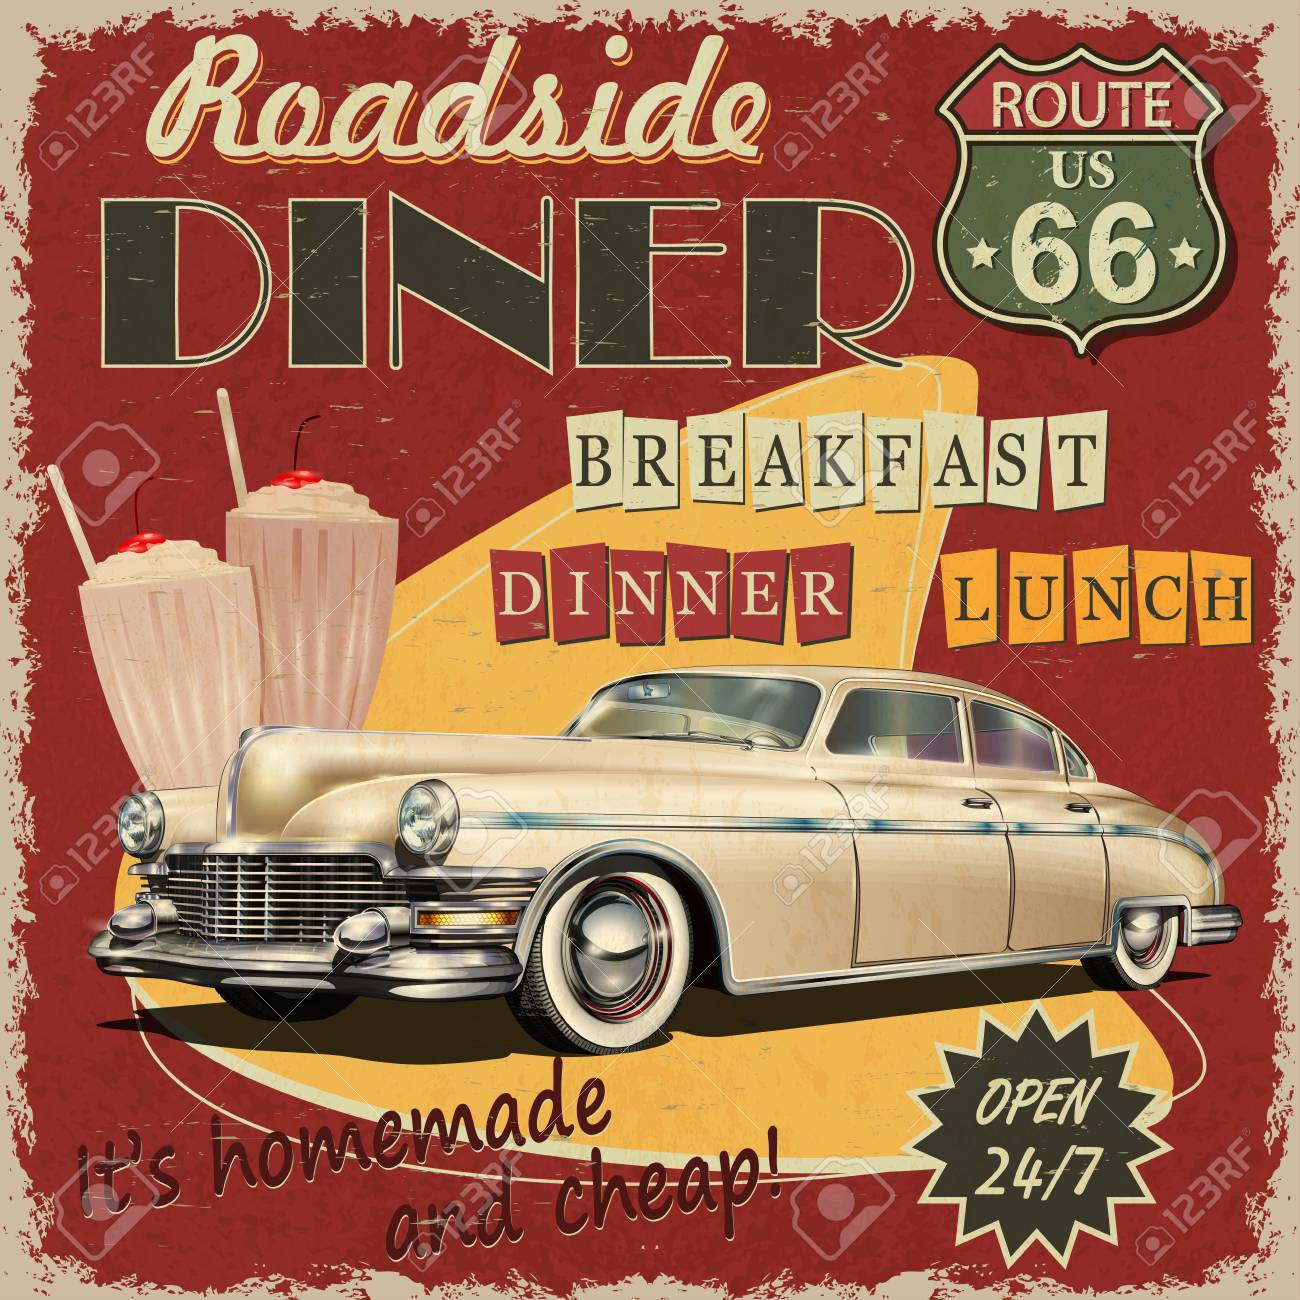 American Diner Vintage Poster Royalty Free Cliparts Vectors And Stock Illustration Image 108996414